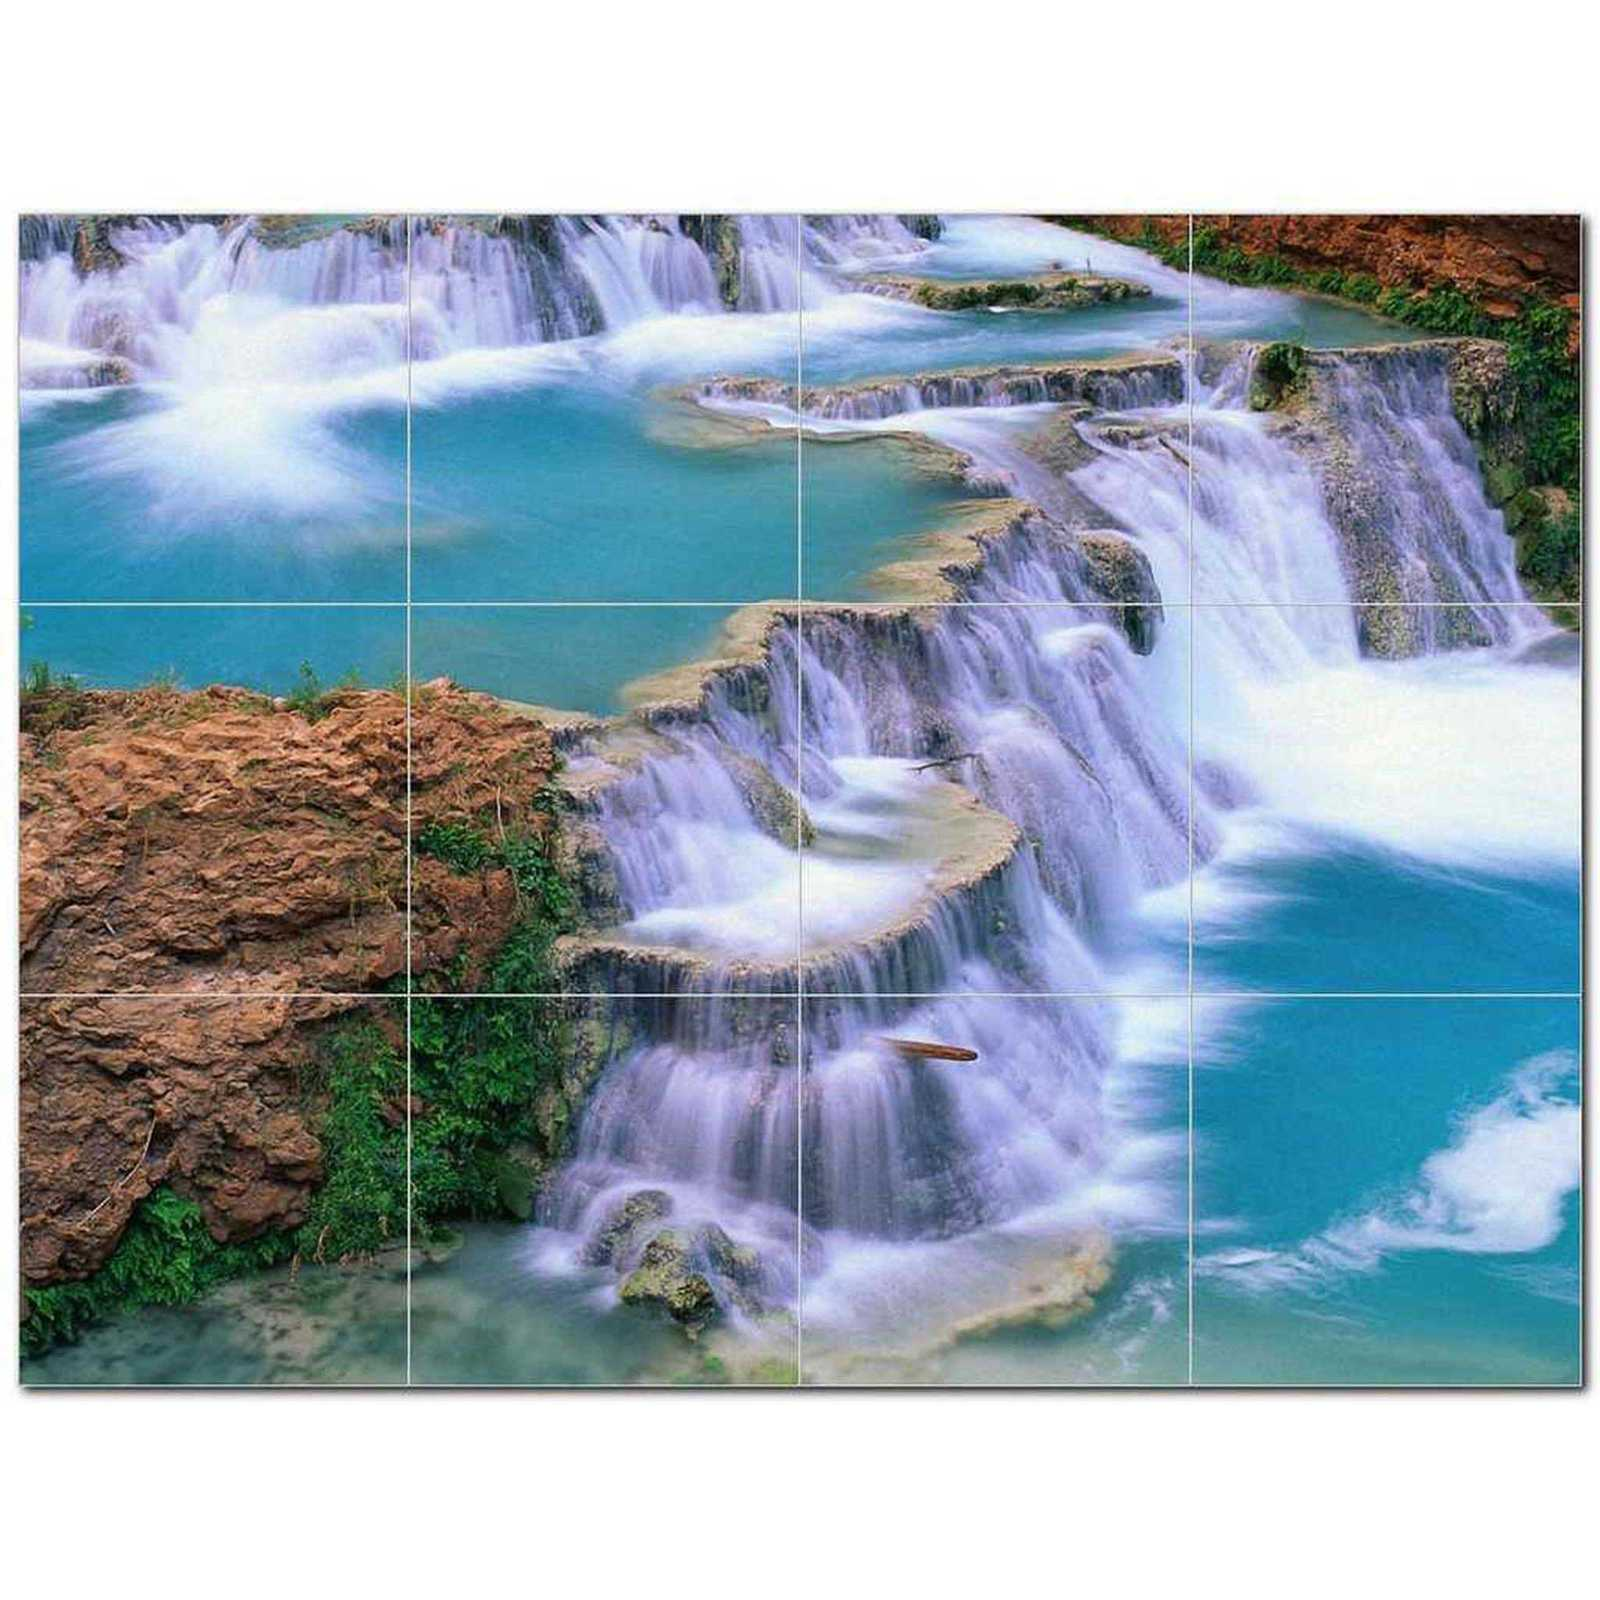 Primary image for Waterfall Photo Ceramic Tile Mural Kitchen Backsplash Bathroom Shower BAZ406137